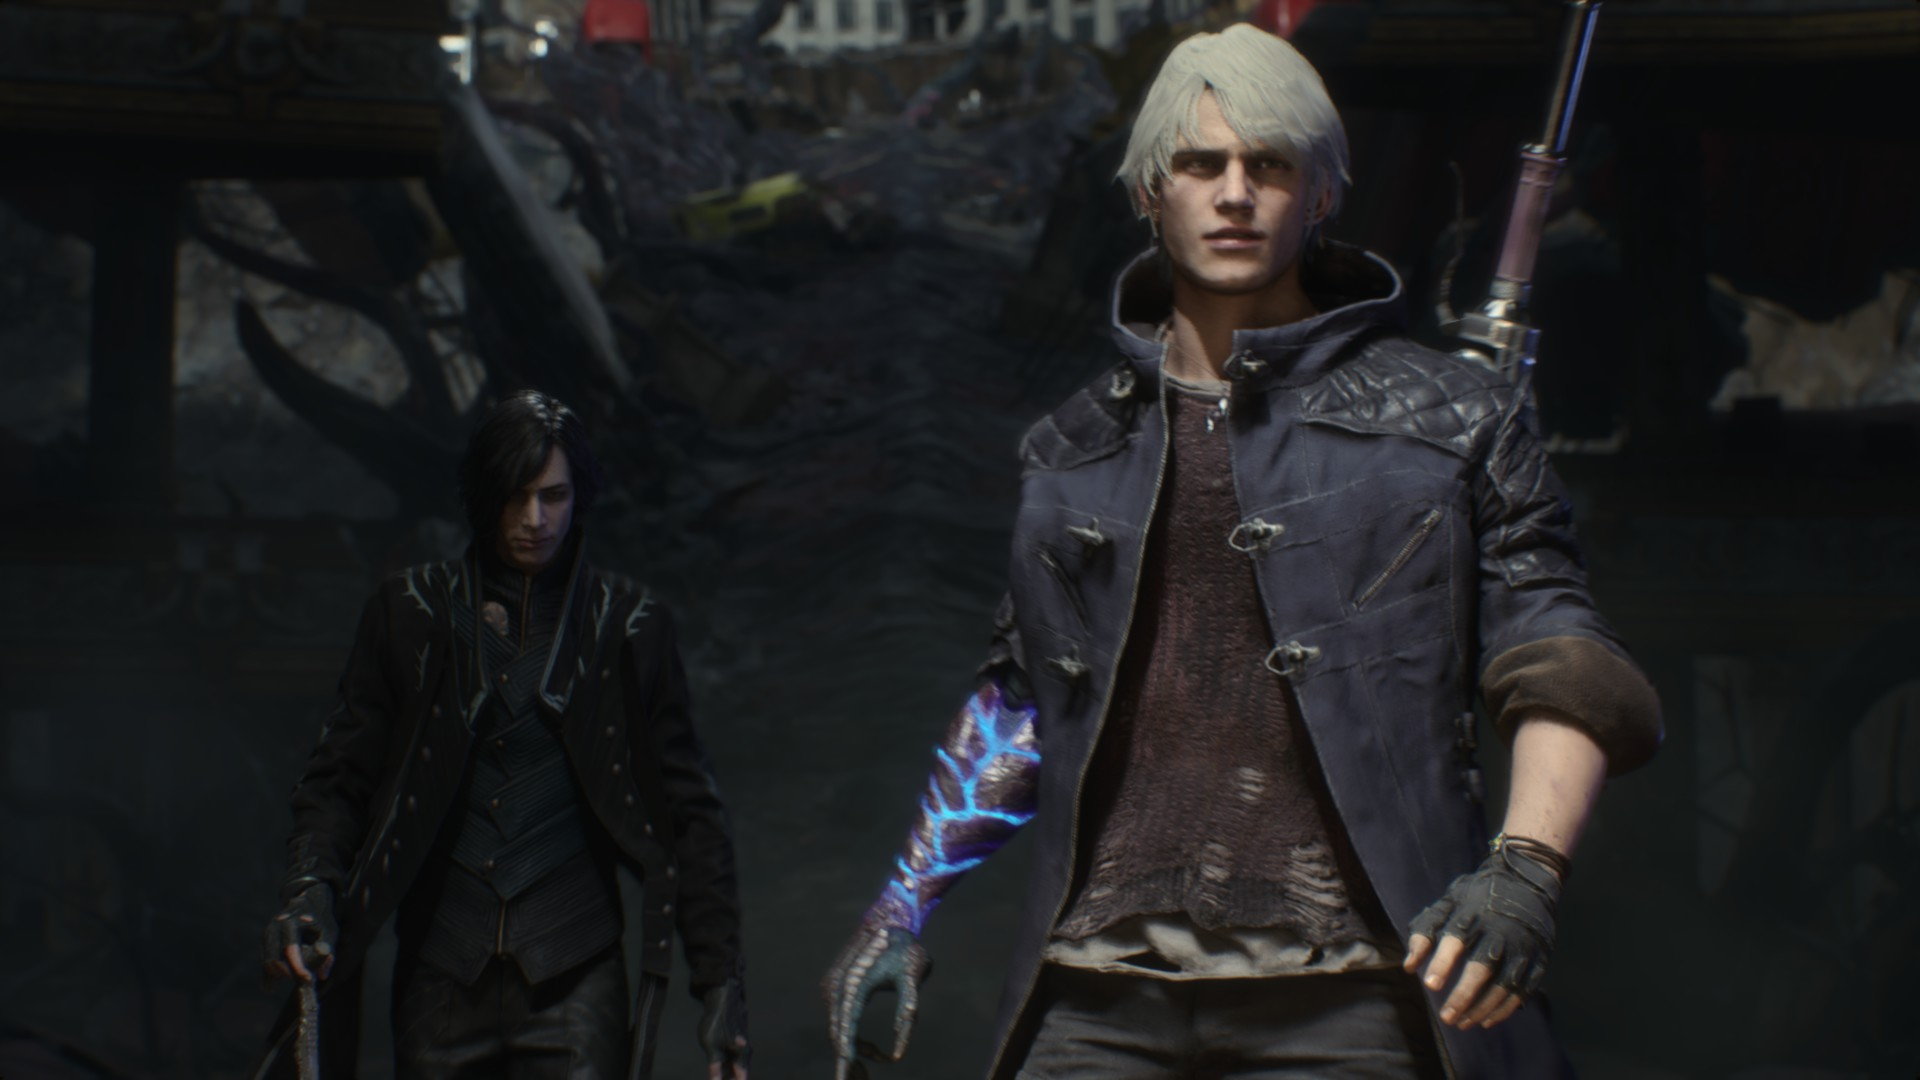 Devil May Cry 5 Wallpaper 2529750 Zerochan Anime Image Board